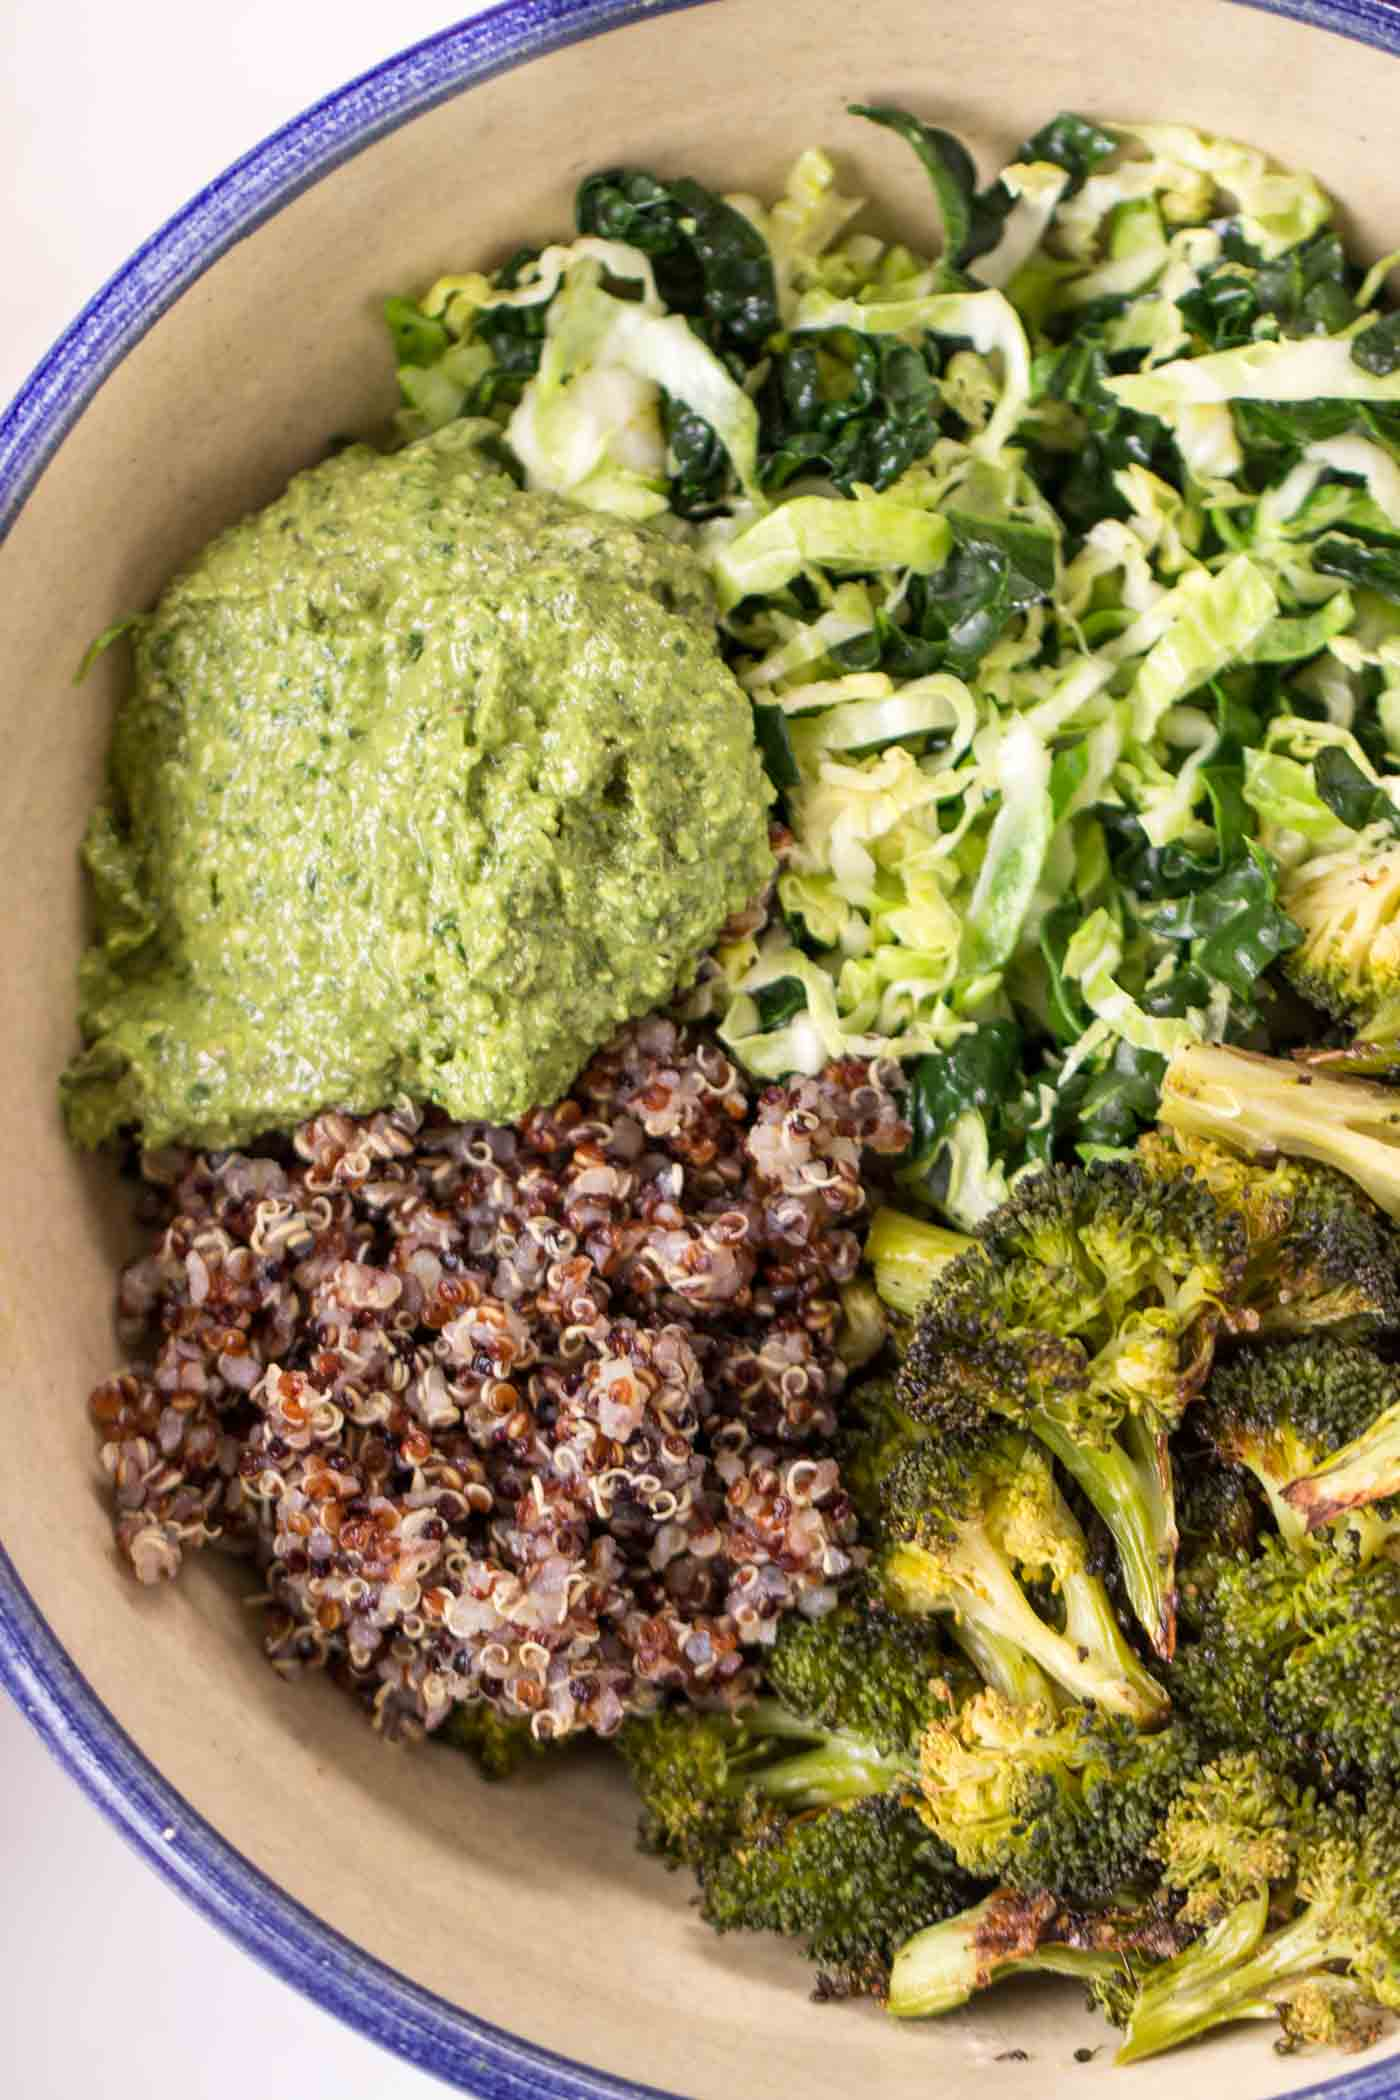 Hempseed Pesto Quinoa Bowls with all kinds of green veggies - kale, broccoli, brussels sprouts and more! {vegan}